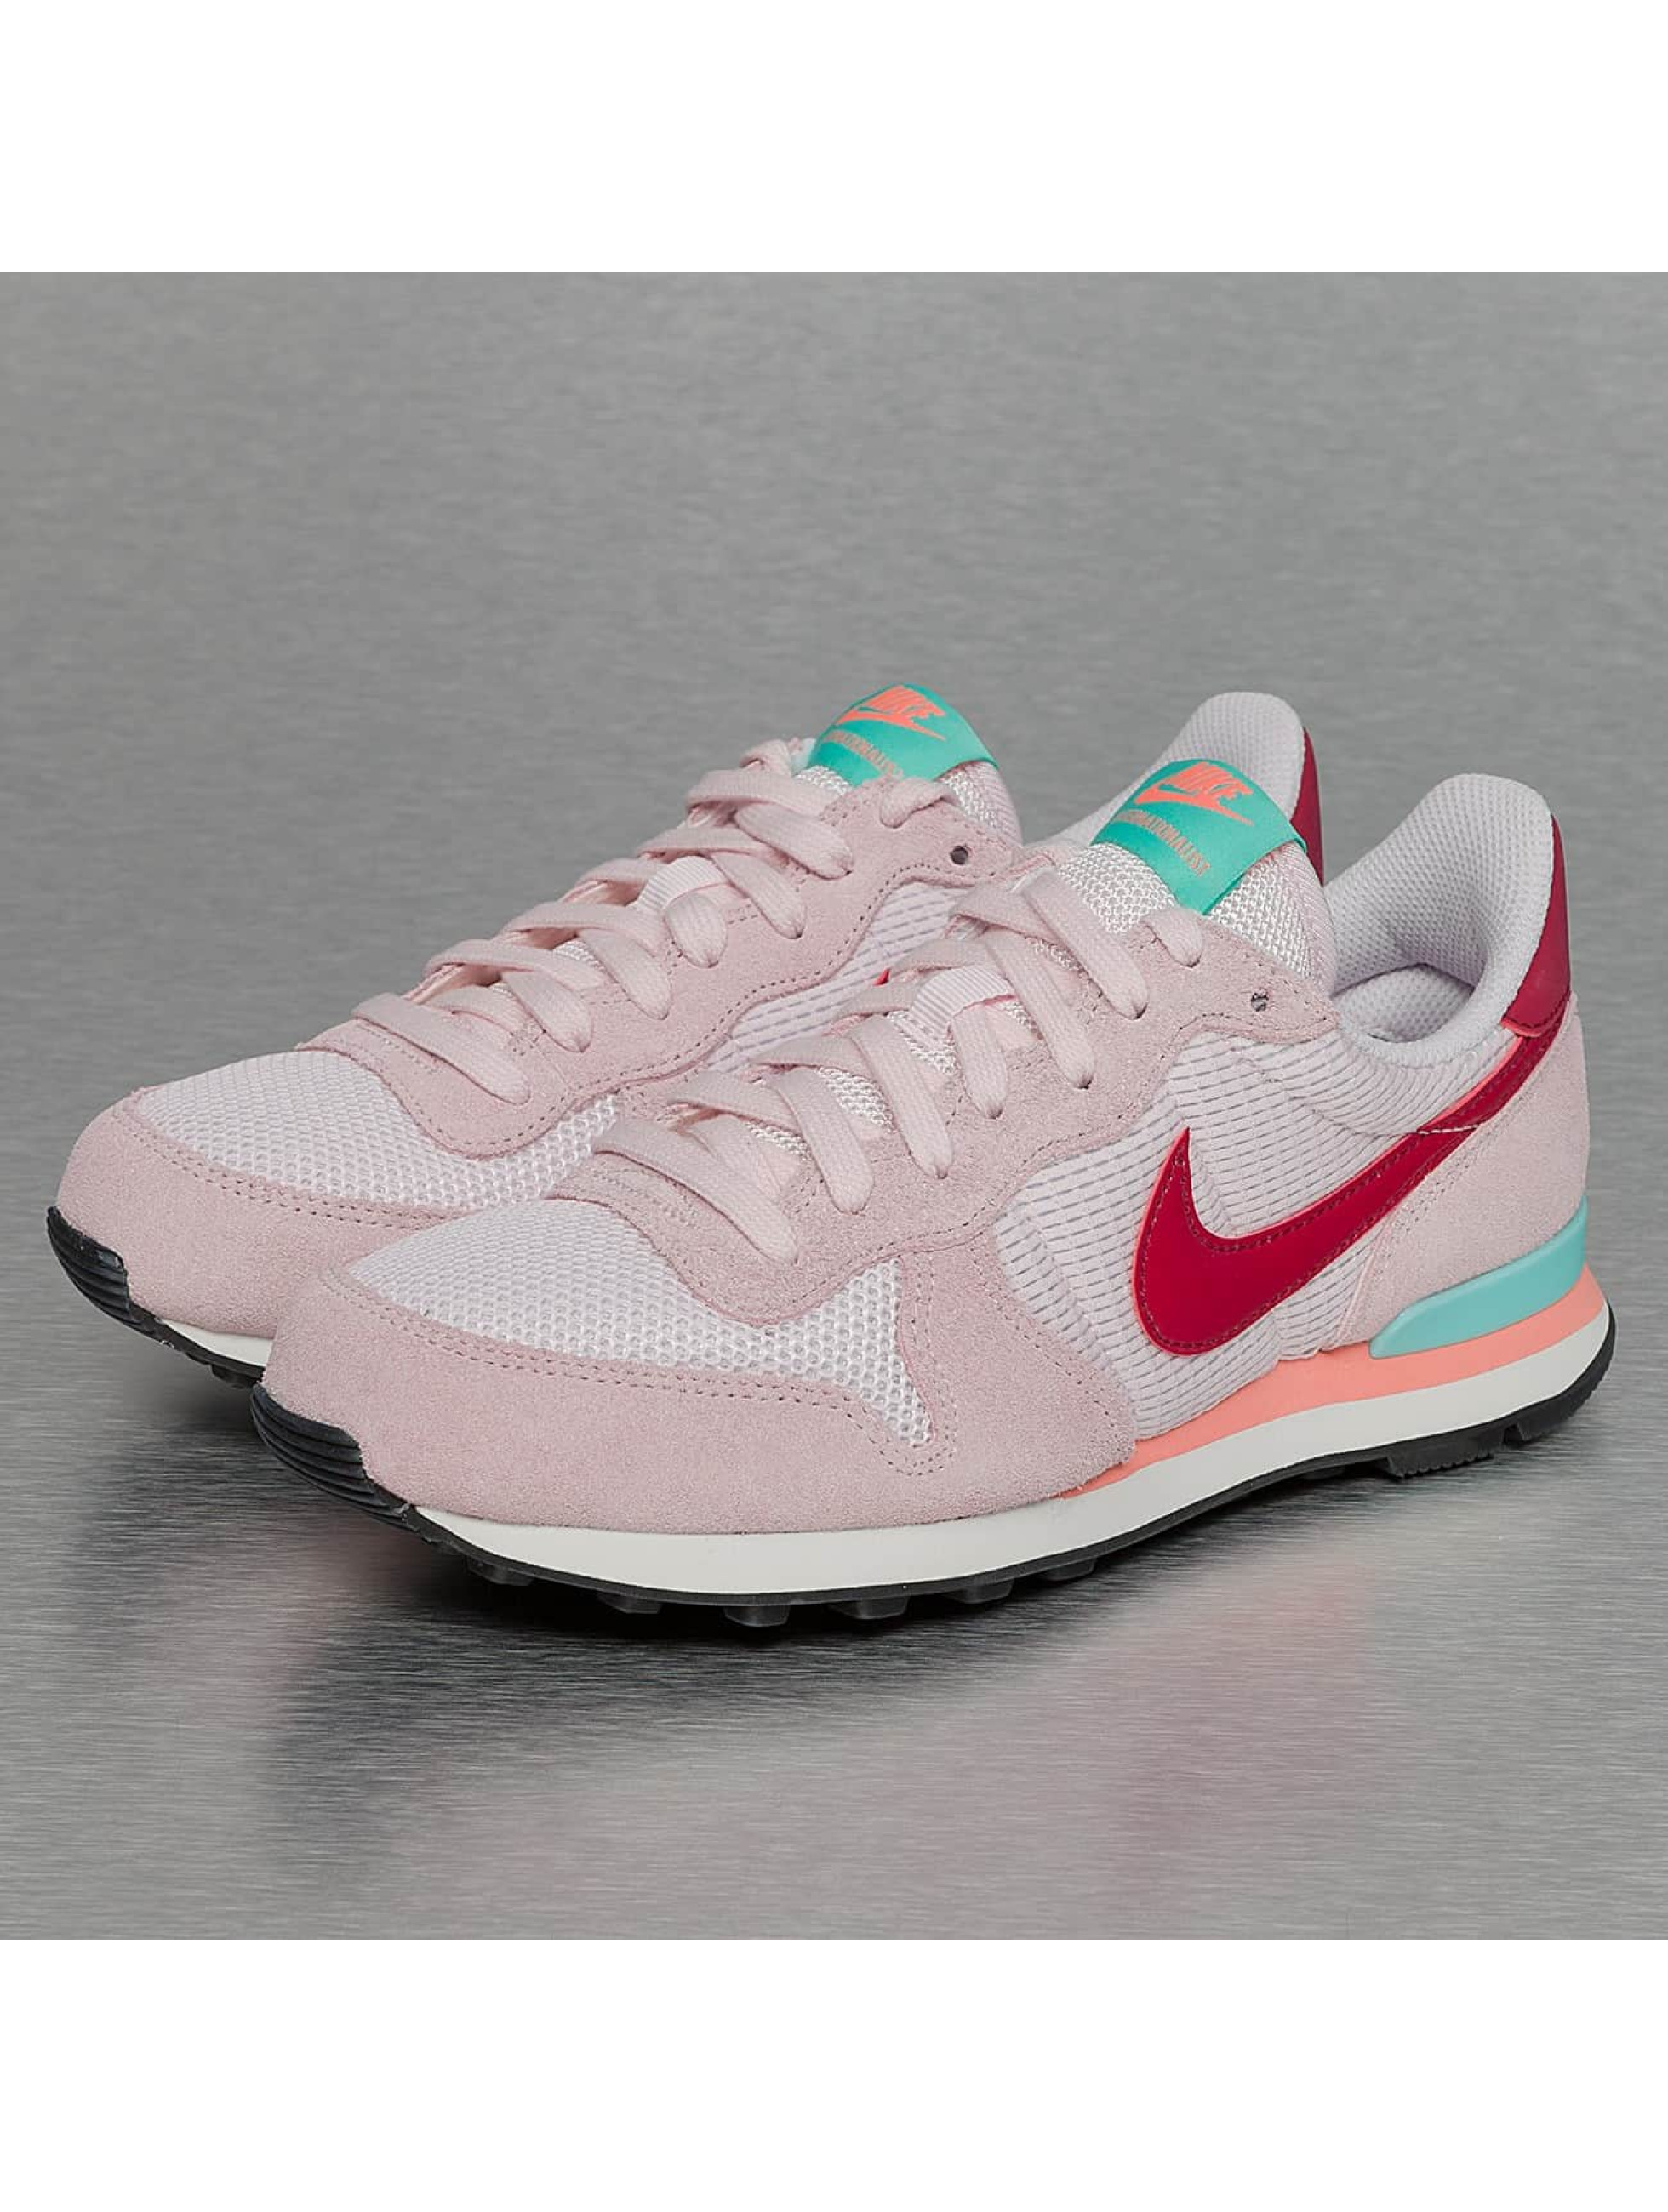 Nike schoen / sneaker Internationalist in rose